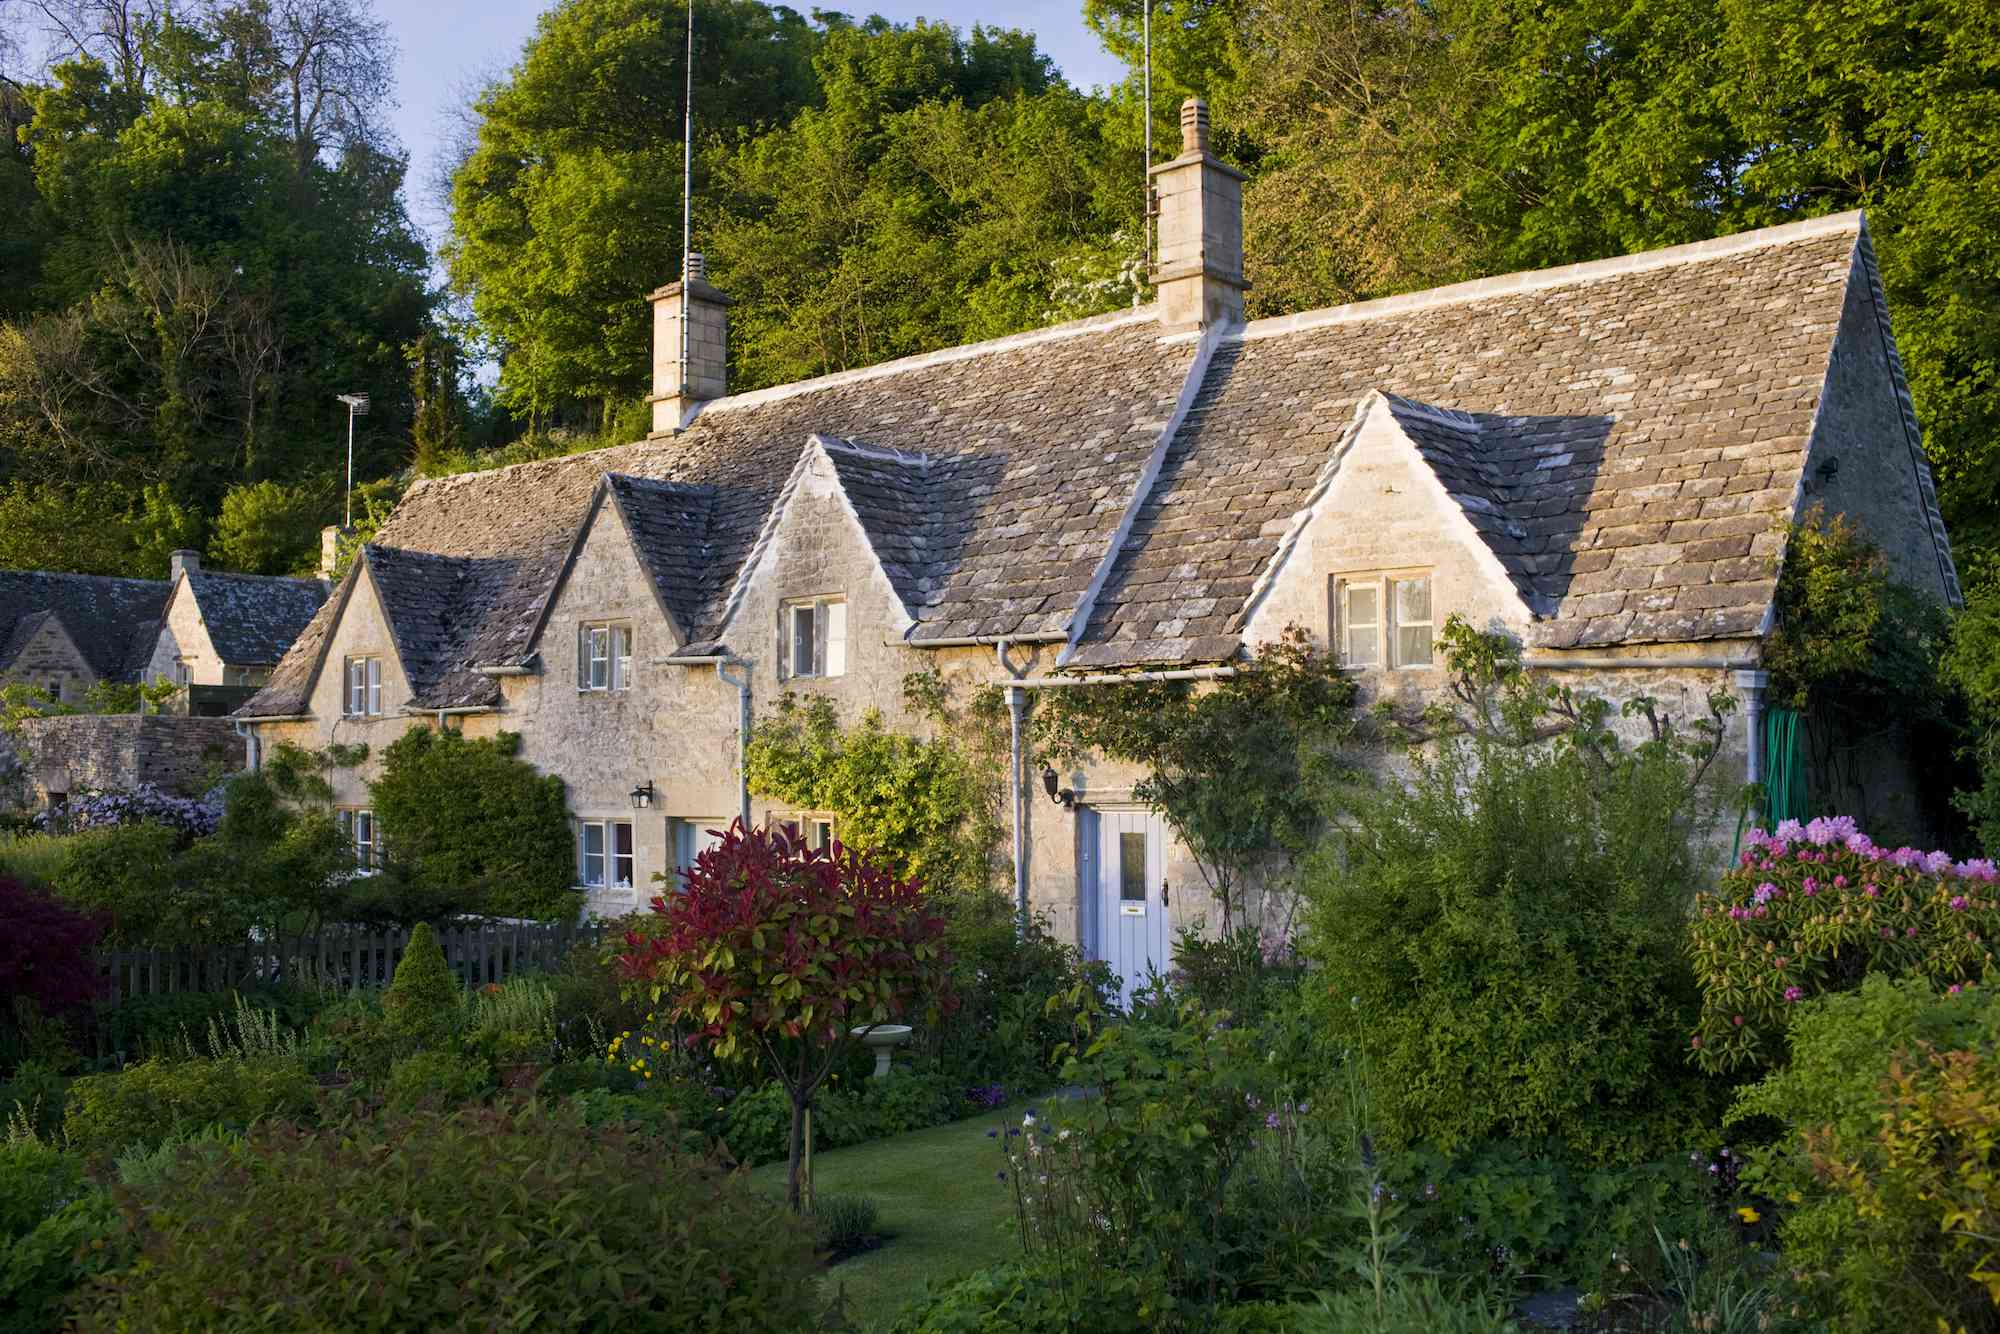 British cottages with front yard gardens